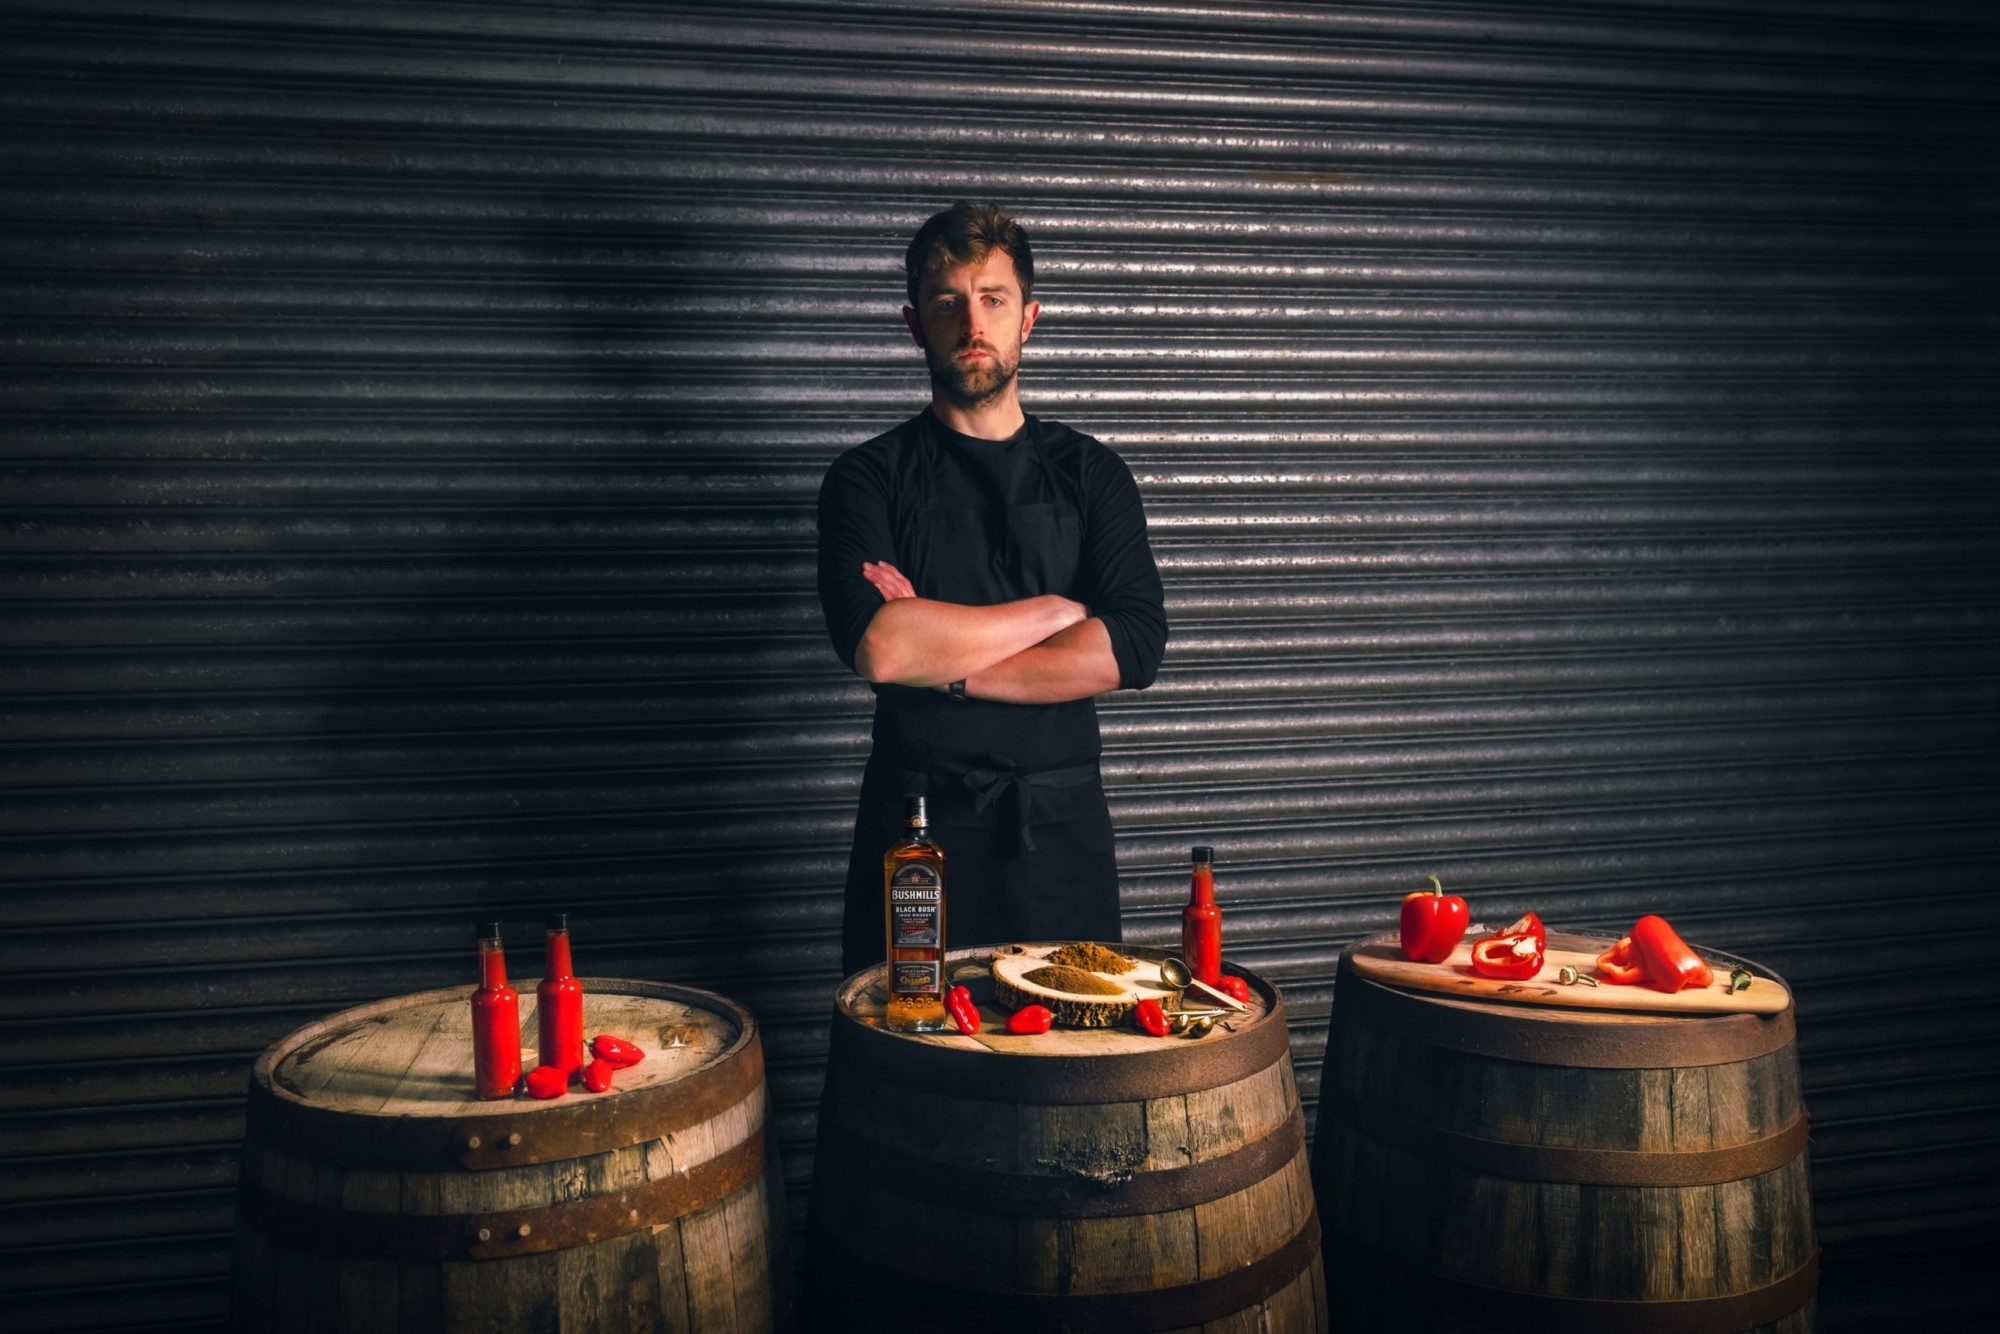 BUSHMILLS BLACK BUSH COLLABORATES WITH IRISH HOT SAUCE PRODUCER TO HOST A SERIES OF COCKTAIL MASTERCLASSES